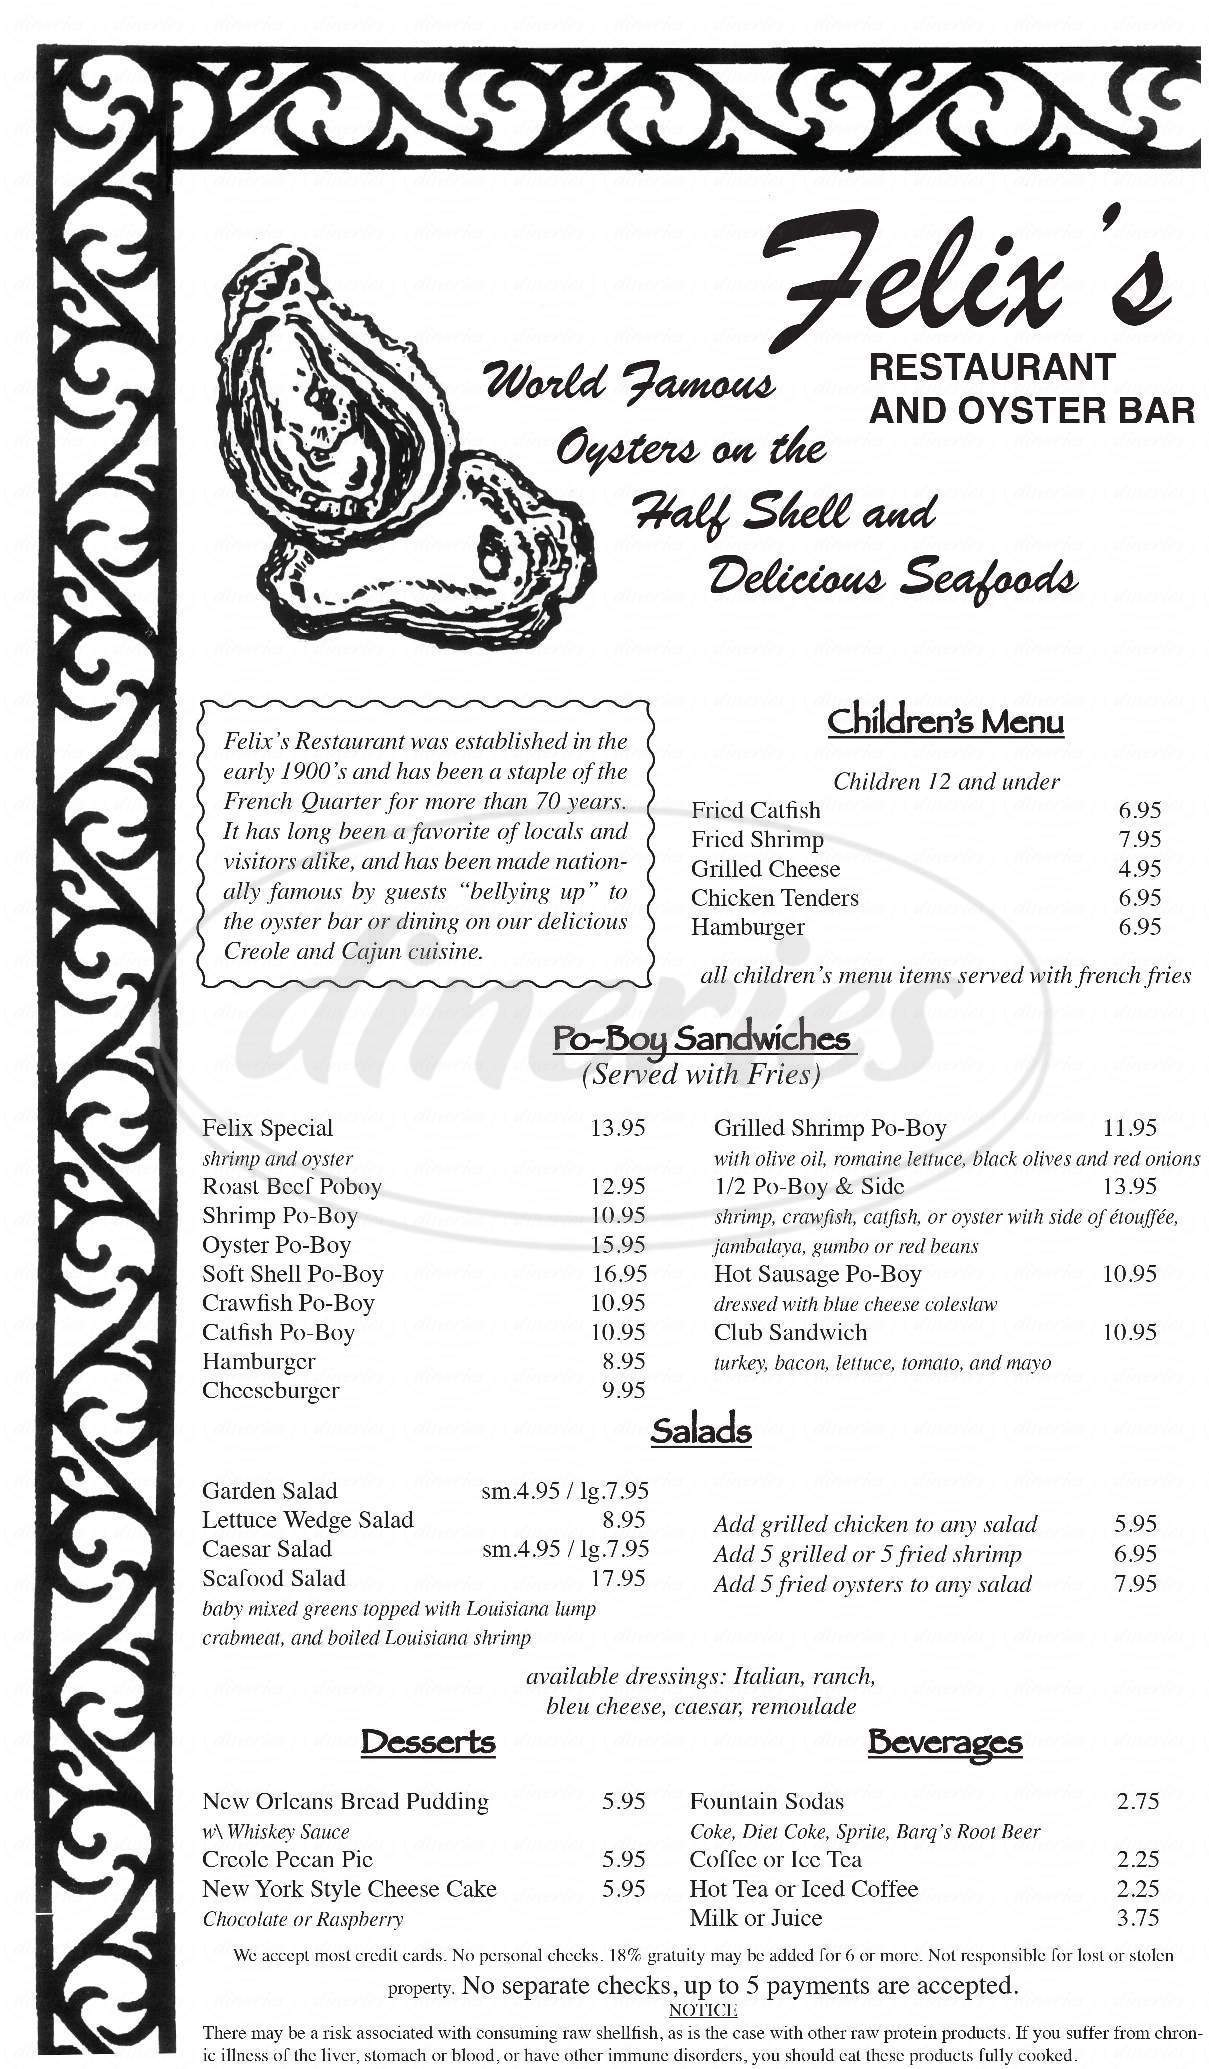 menu for Felix's Restaurant & Oyster Bar